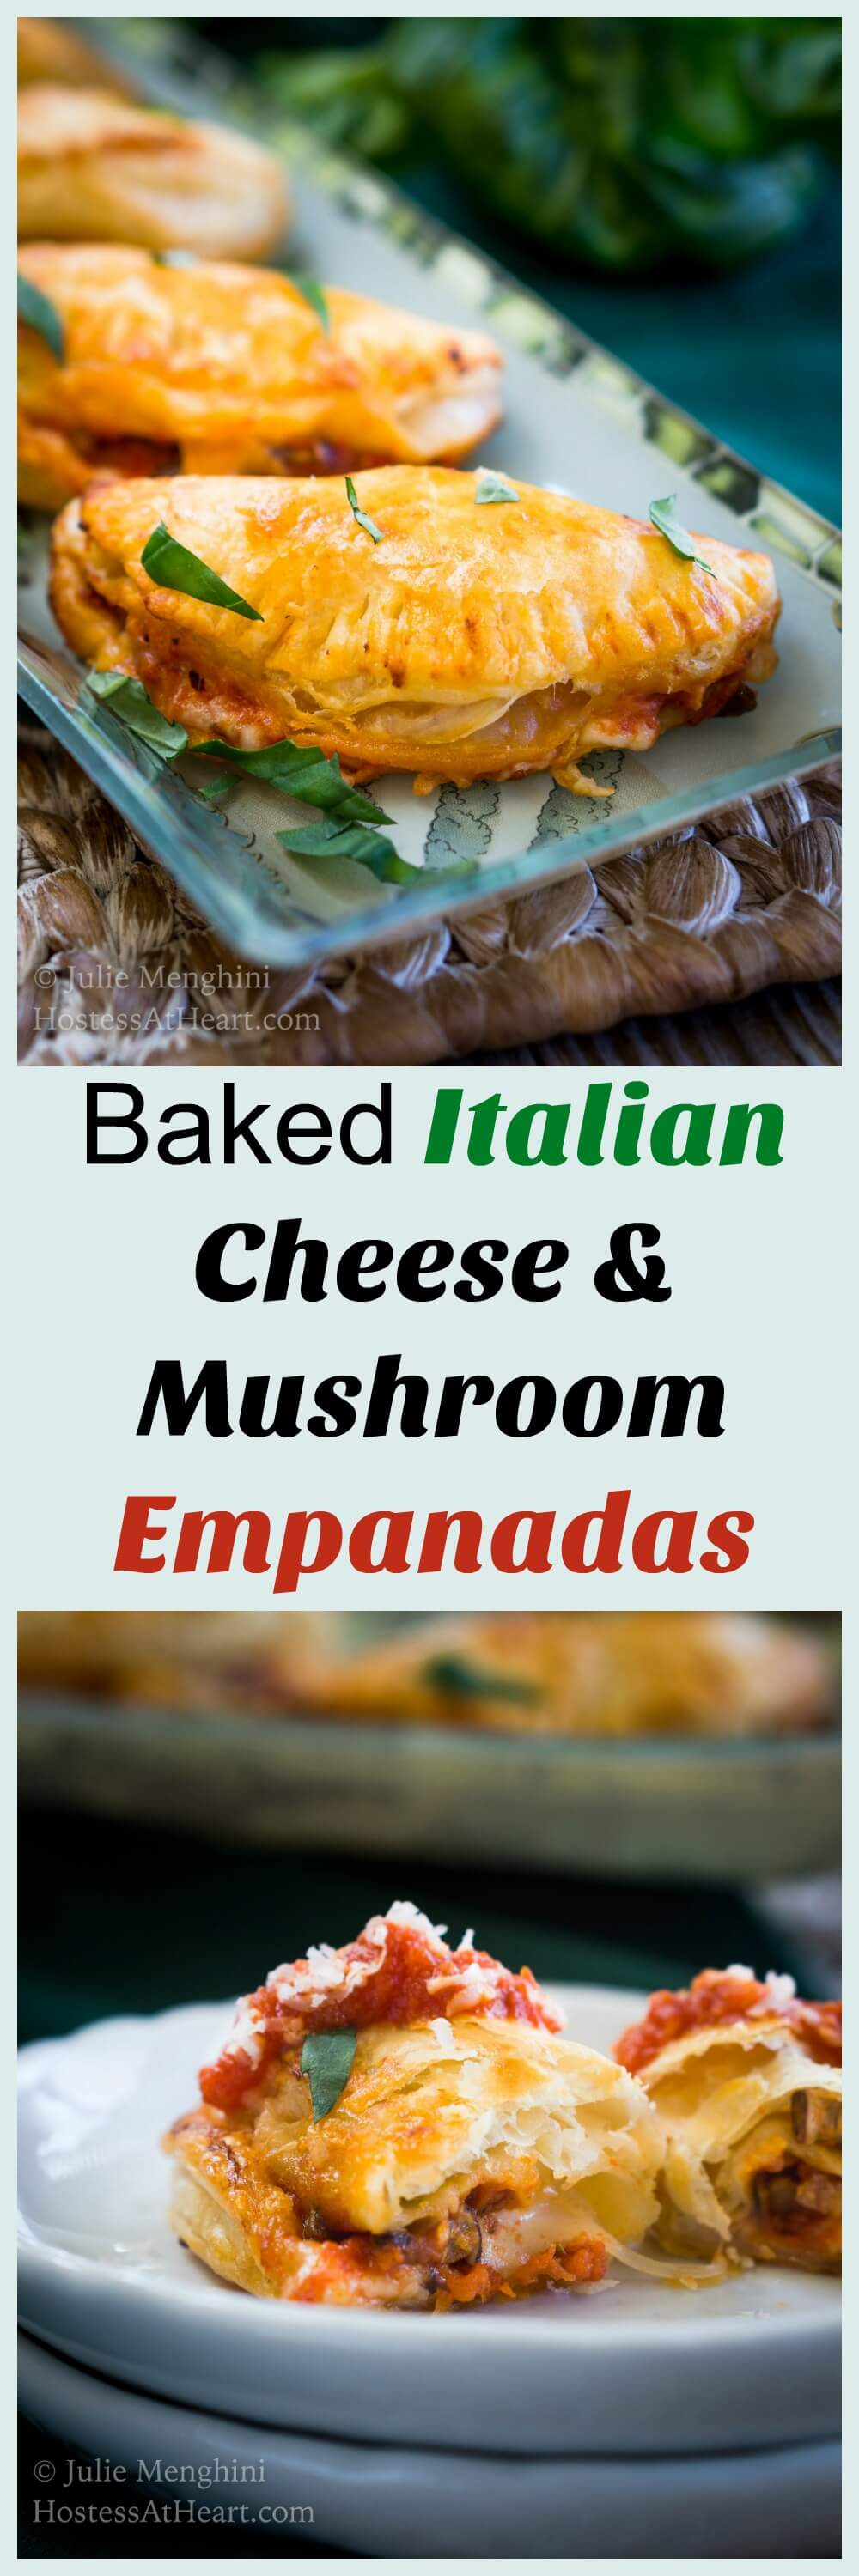 This Baked Italian Cheese Mushroom Empanada recipe makes an amazing #appetizer or delicious meal.  They're quick, easy, and everyone's going to love them. #ad #CheeseLove  @crystalfarmscheese | Appetizers For Party | cheese empanada recipe